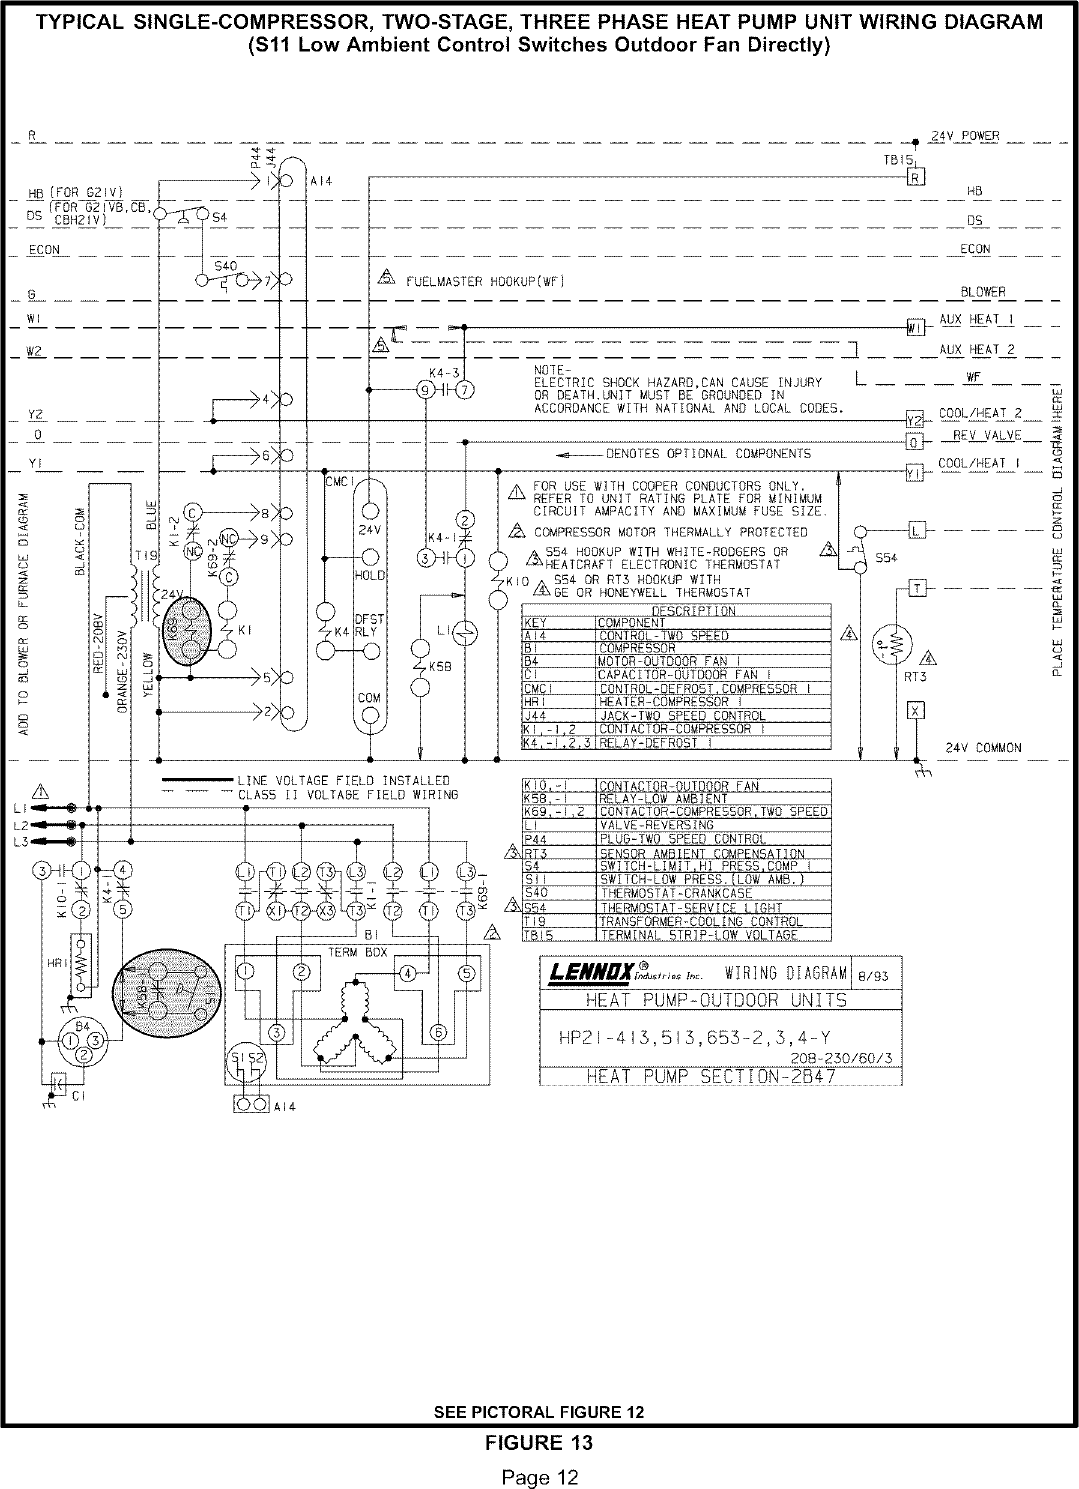 Capacitor Wiring Diagram On Heat Pump Outdoor Unit Wiring Diagram